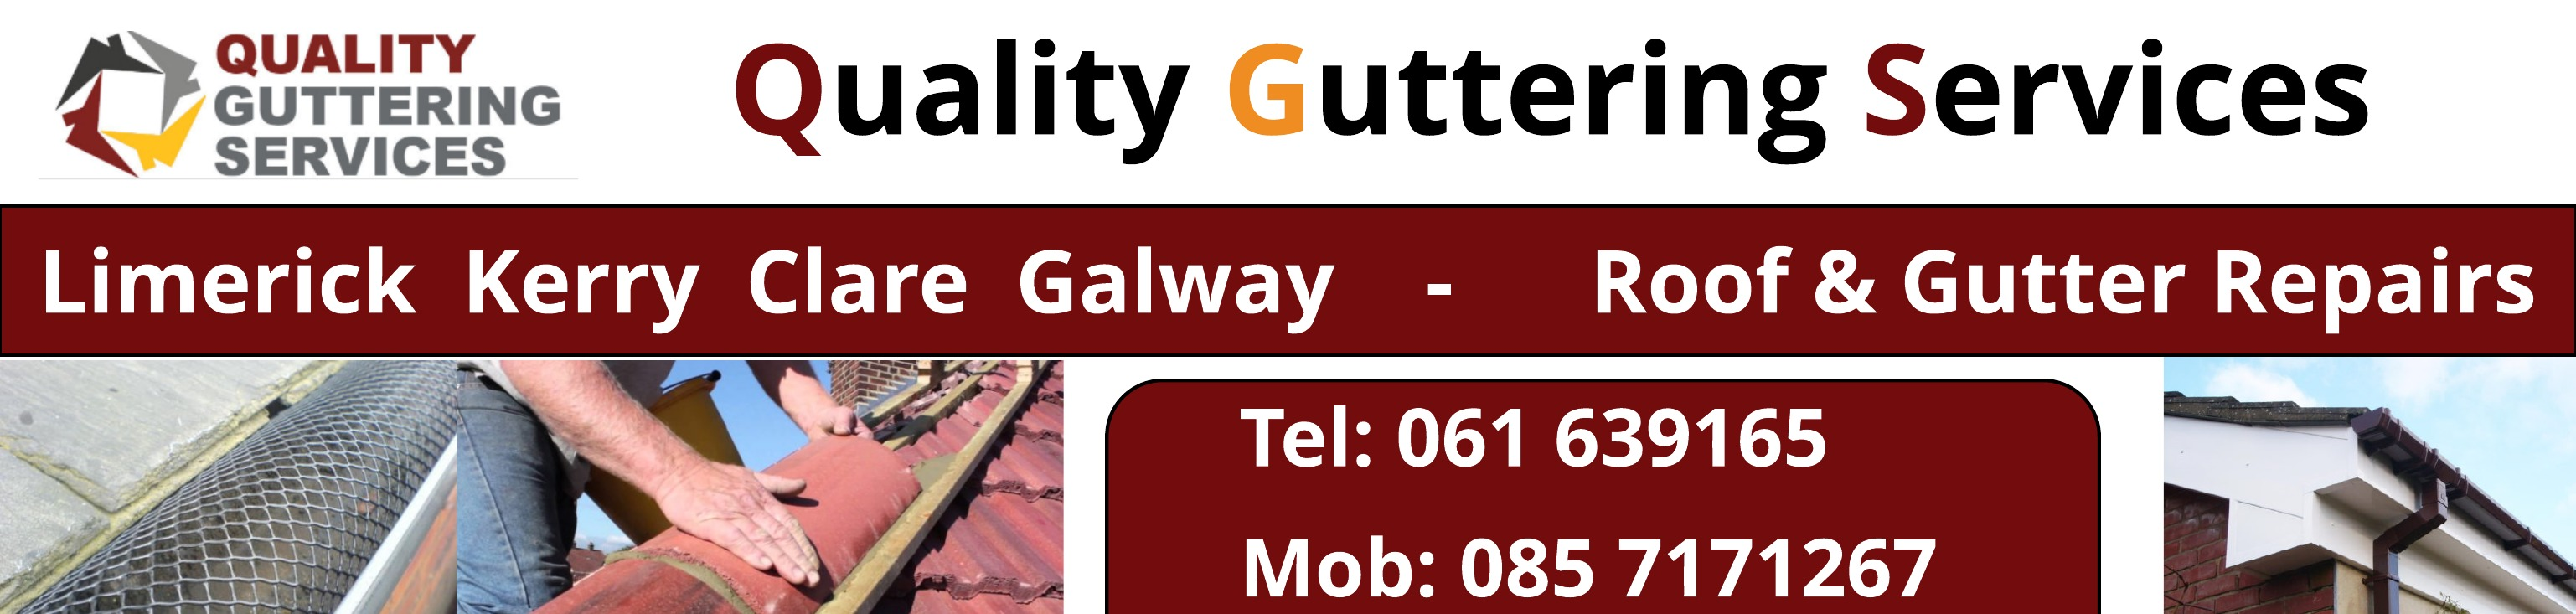 Roofing Repairs Limerick Quality Guttering Services